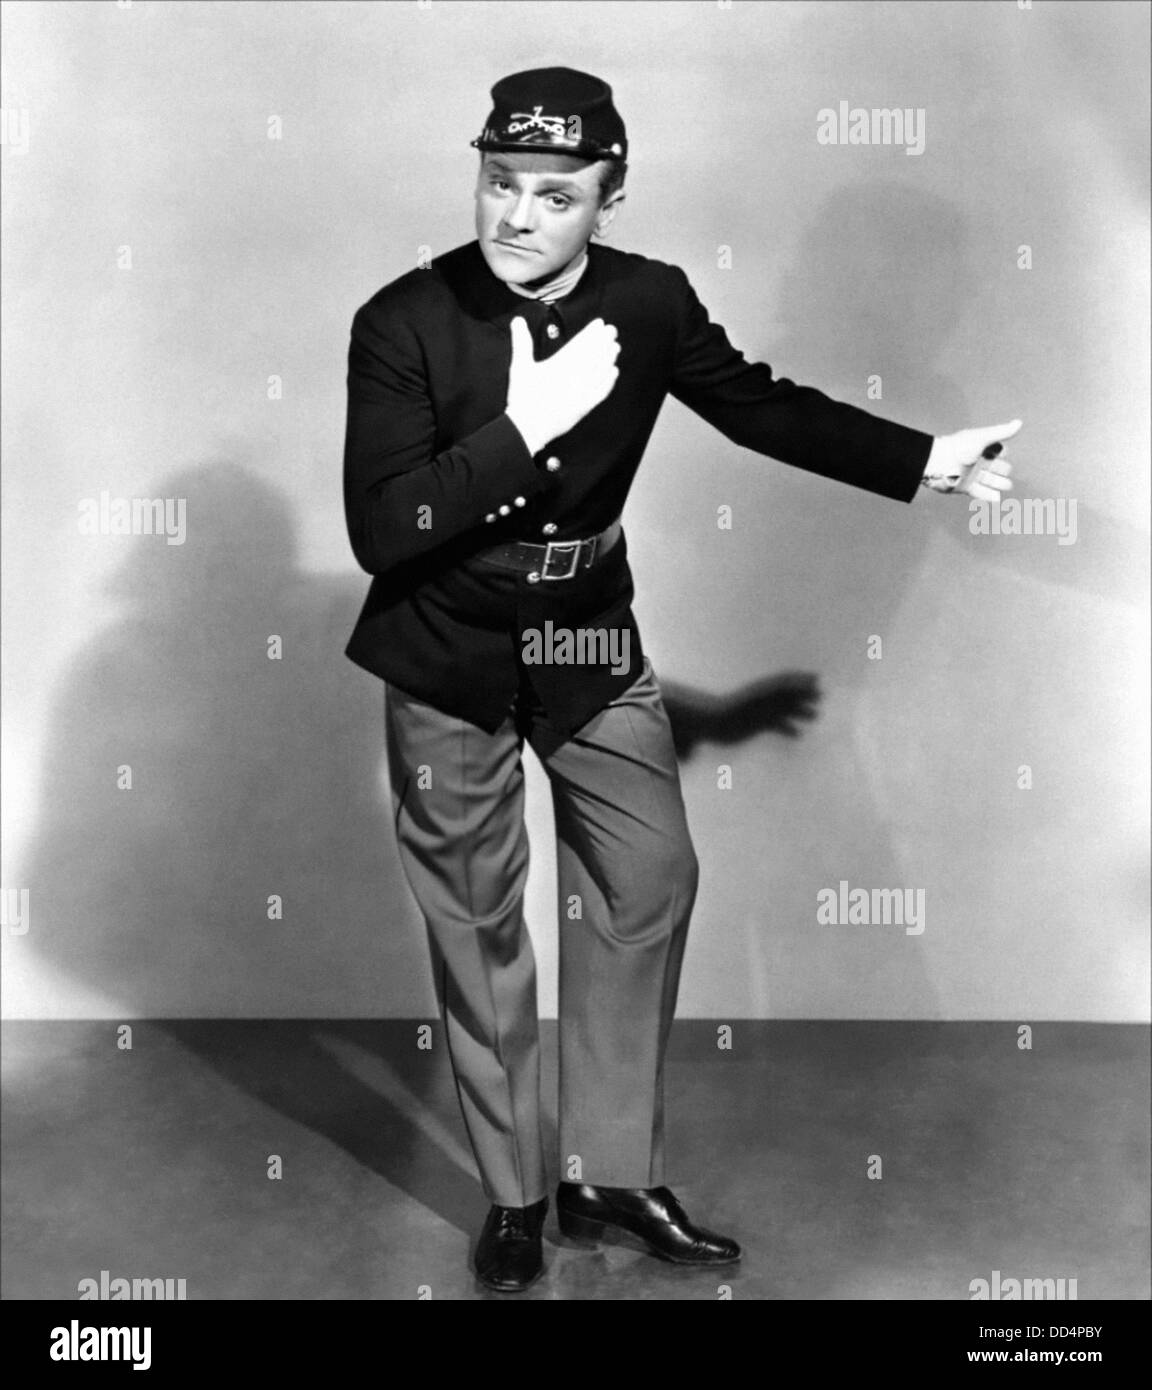 YANKEE Doodle Dandy - James Cagney - Réalisé par Michael Curtiz - First National 1942 Warner Bros Photo Stock